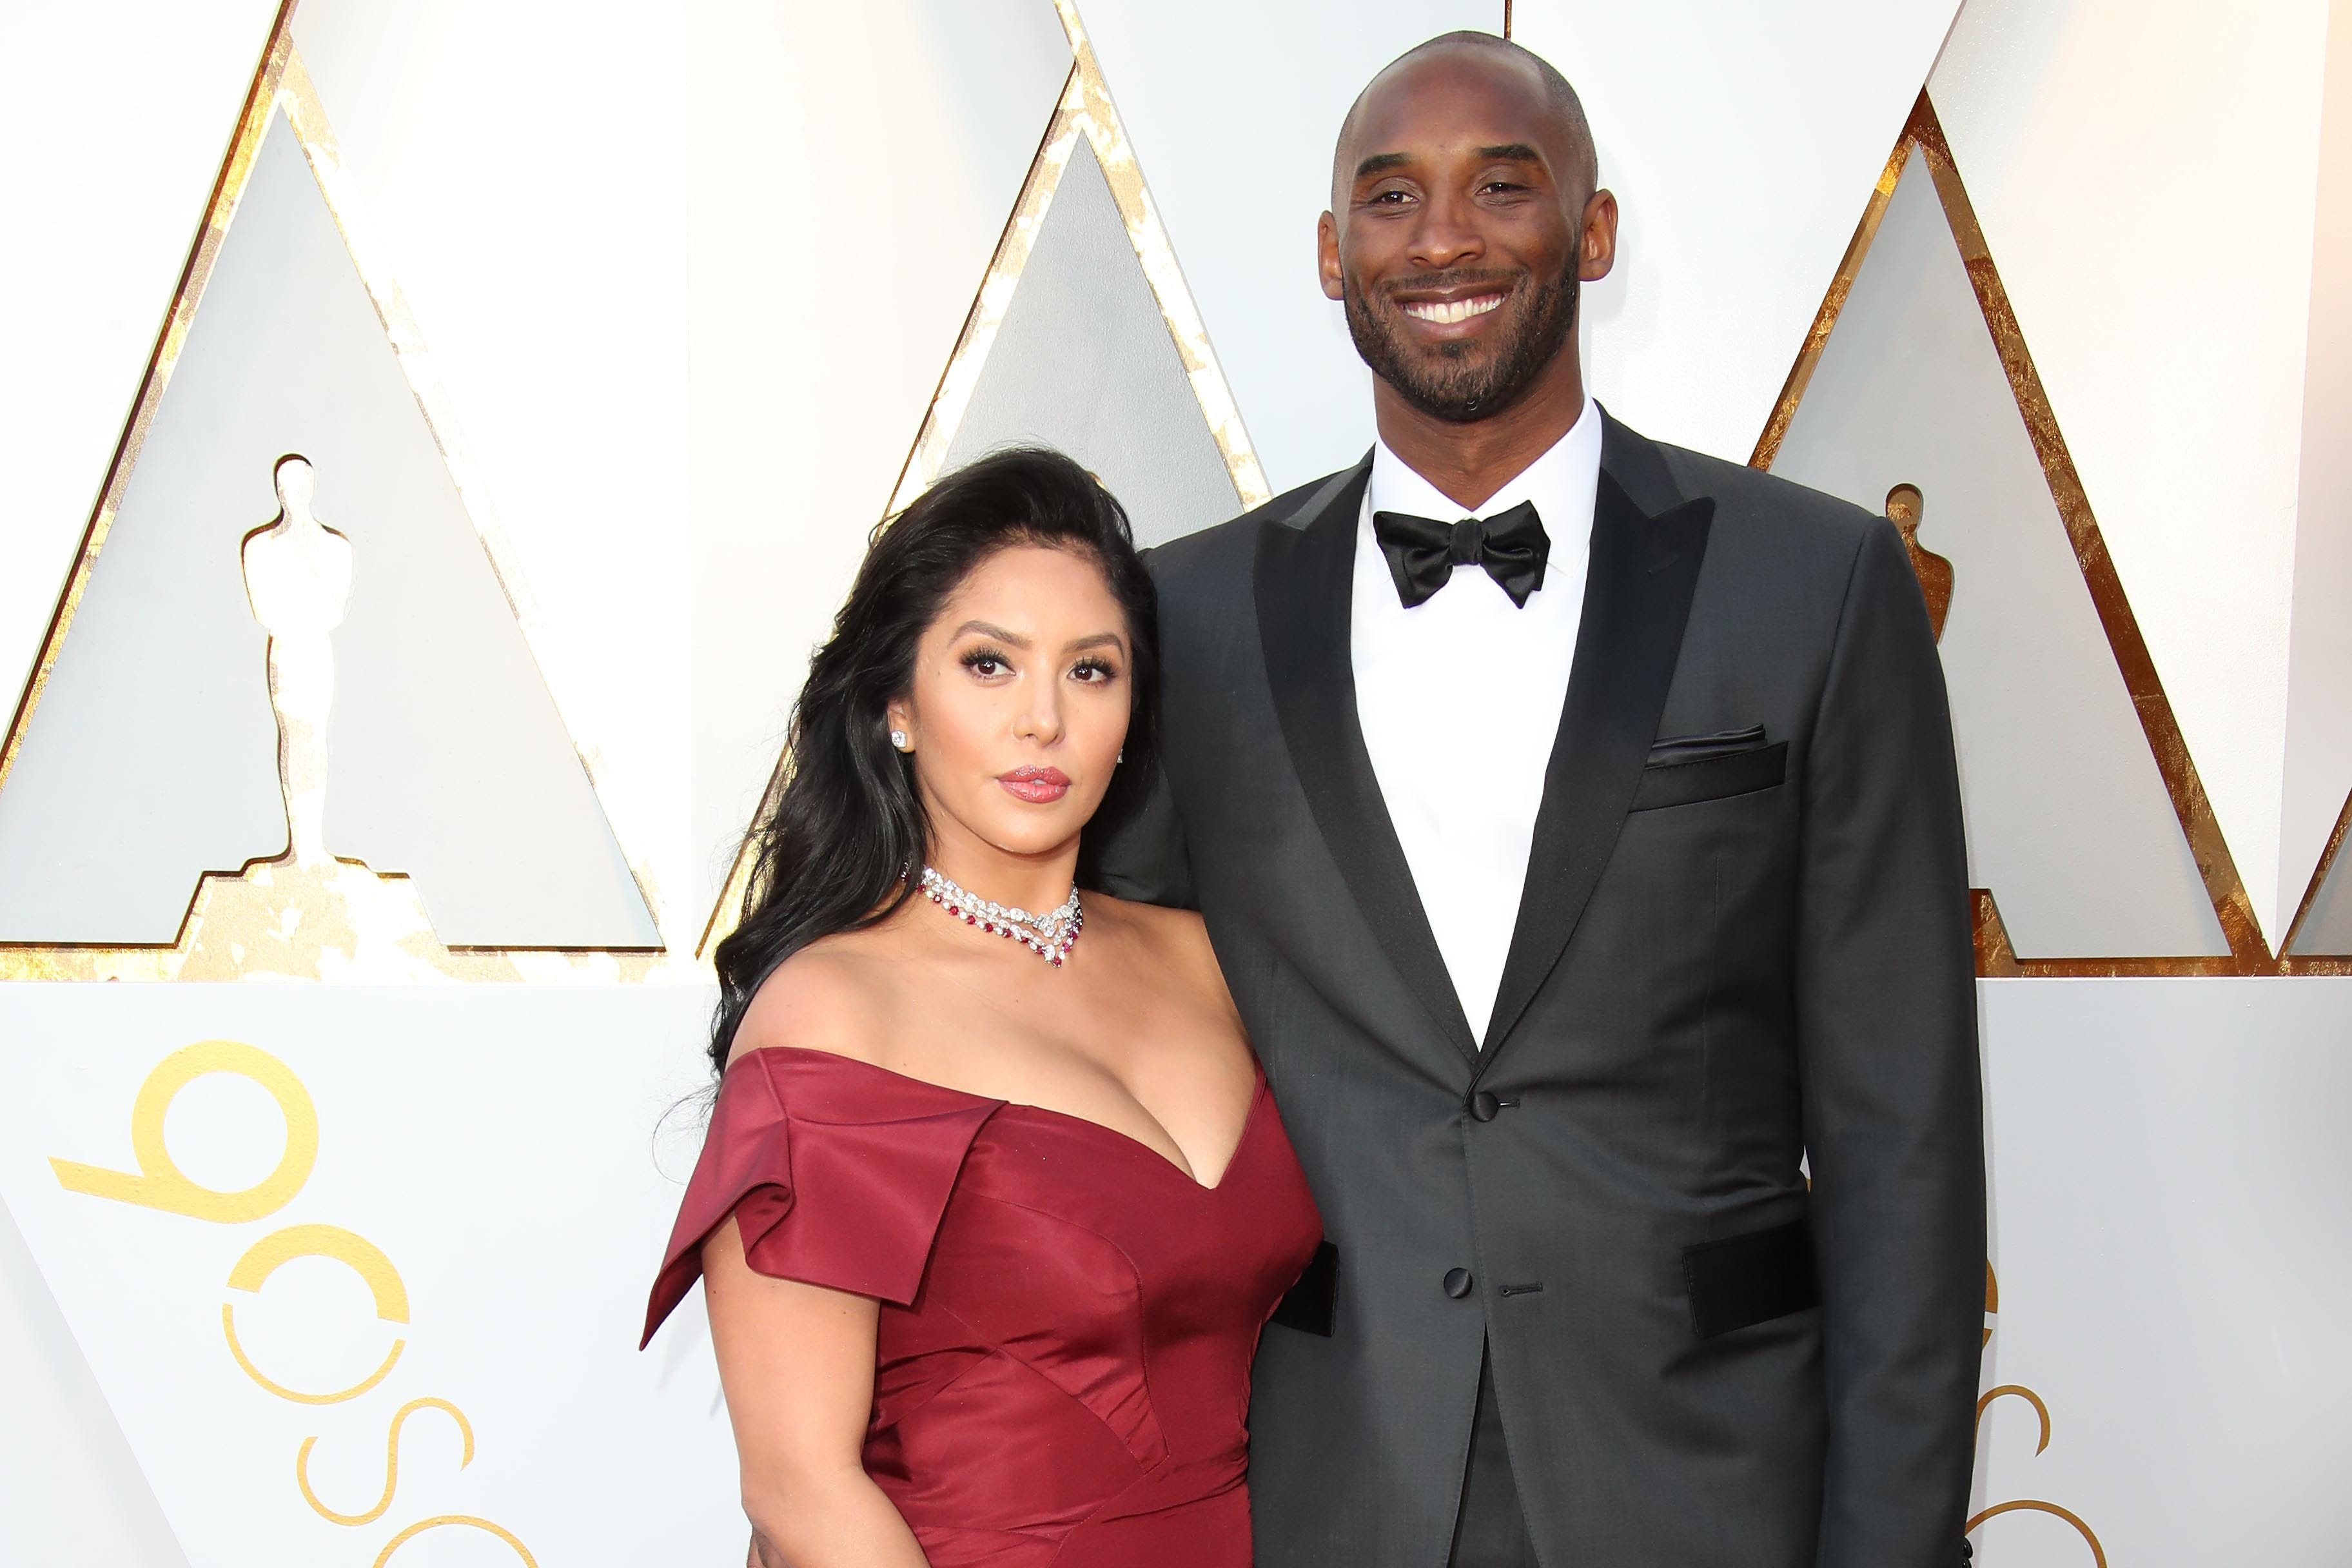 Vanessa Bryant changes Instagram profile picture to Kobe Bryant and Gianna